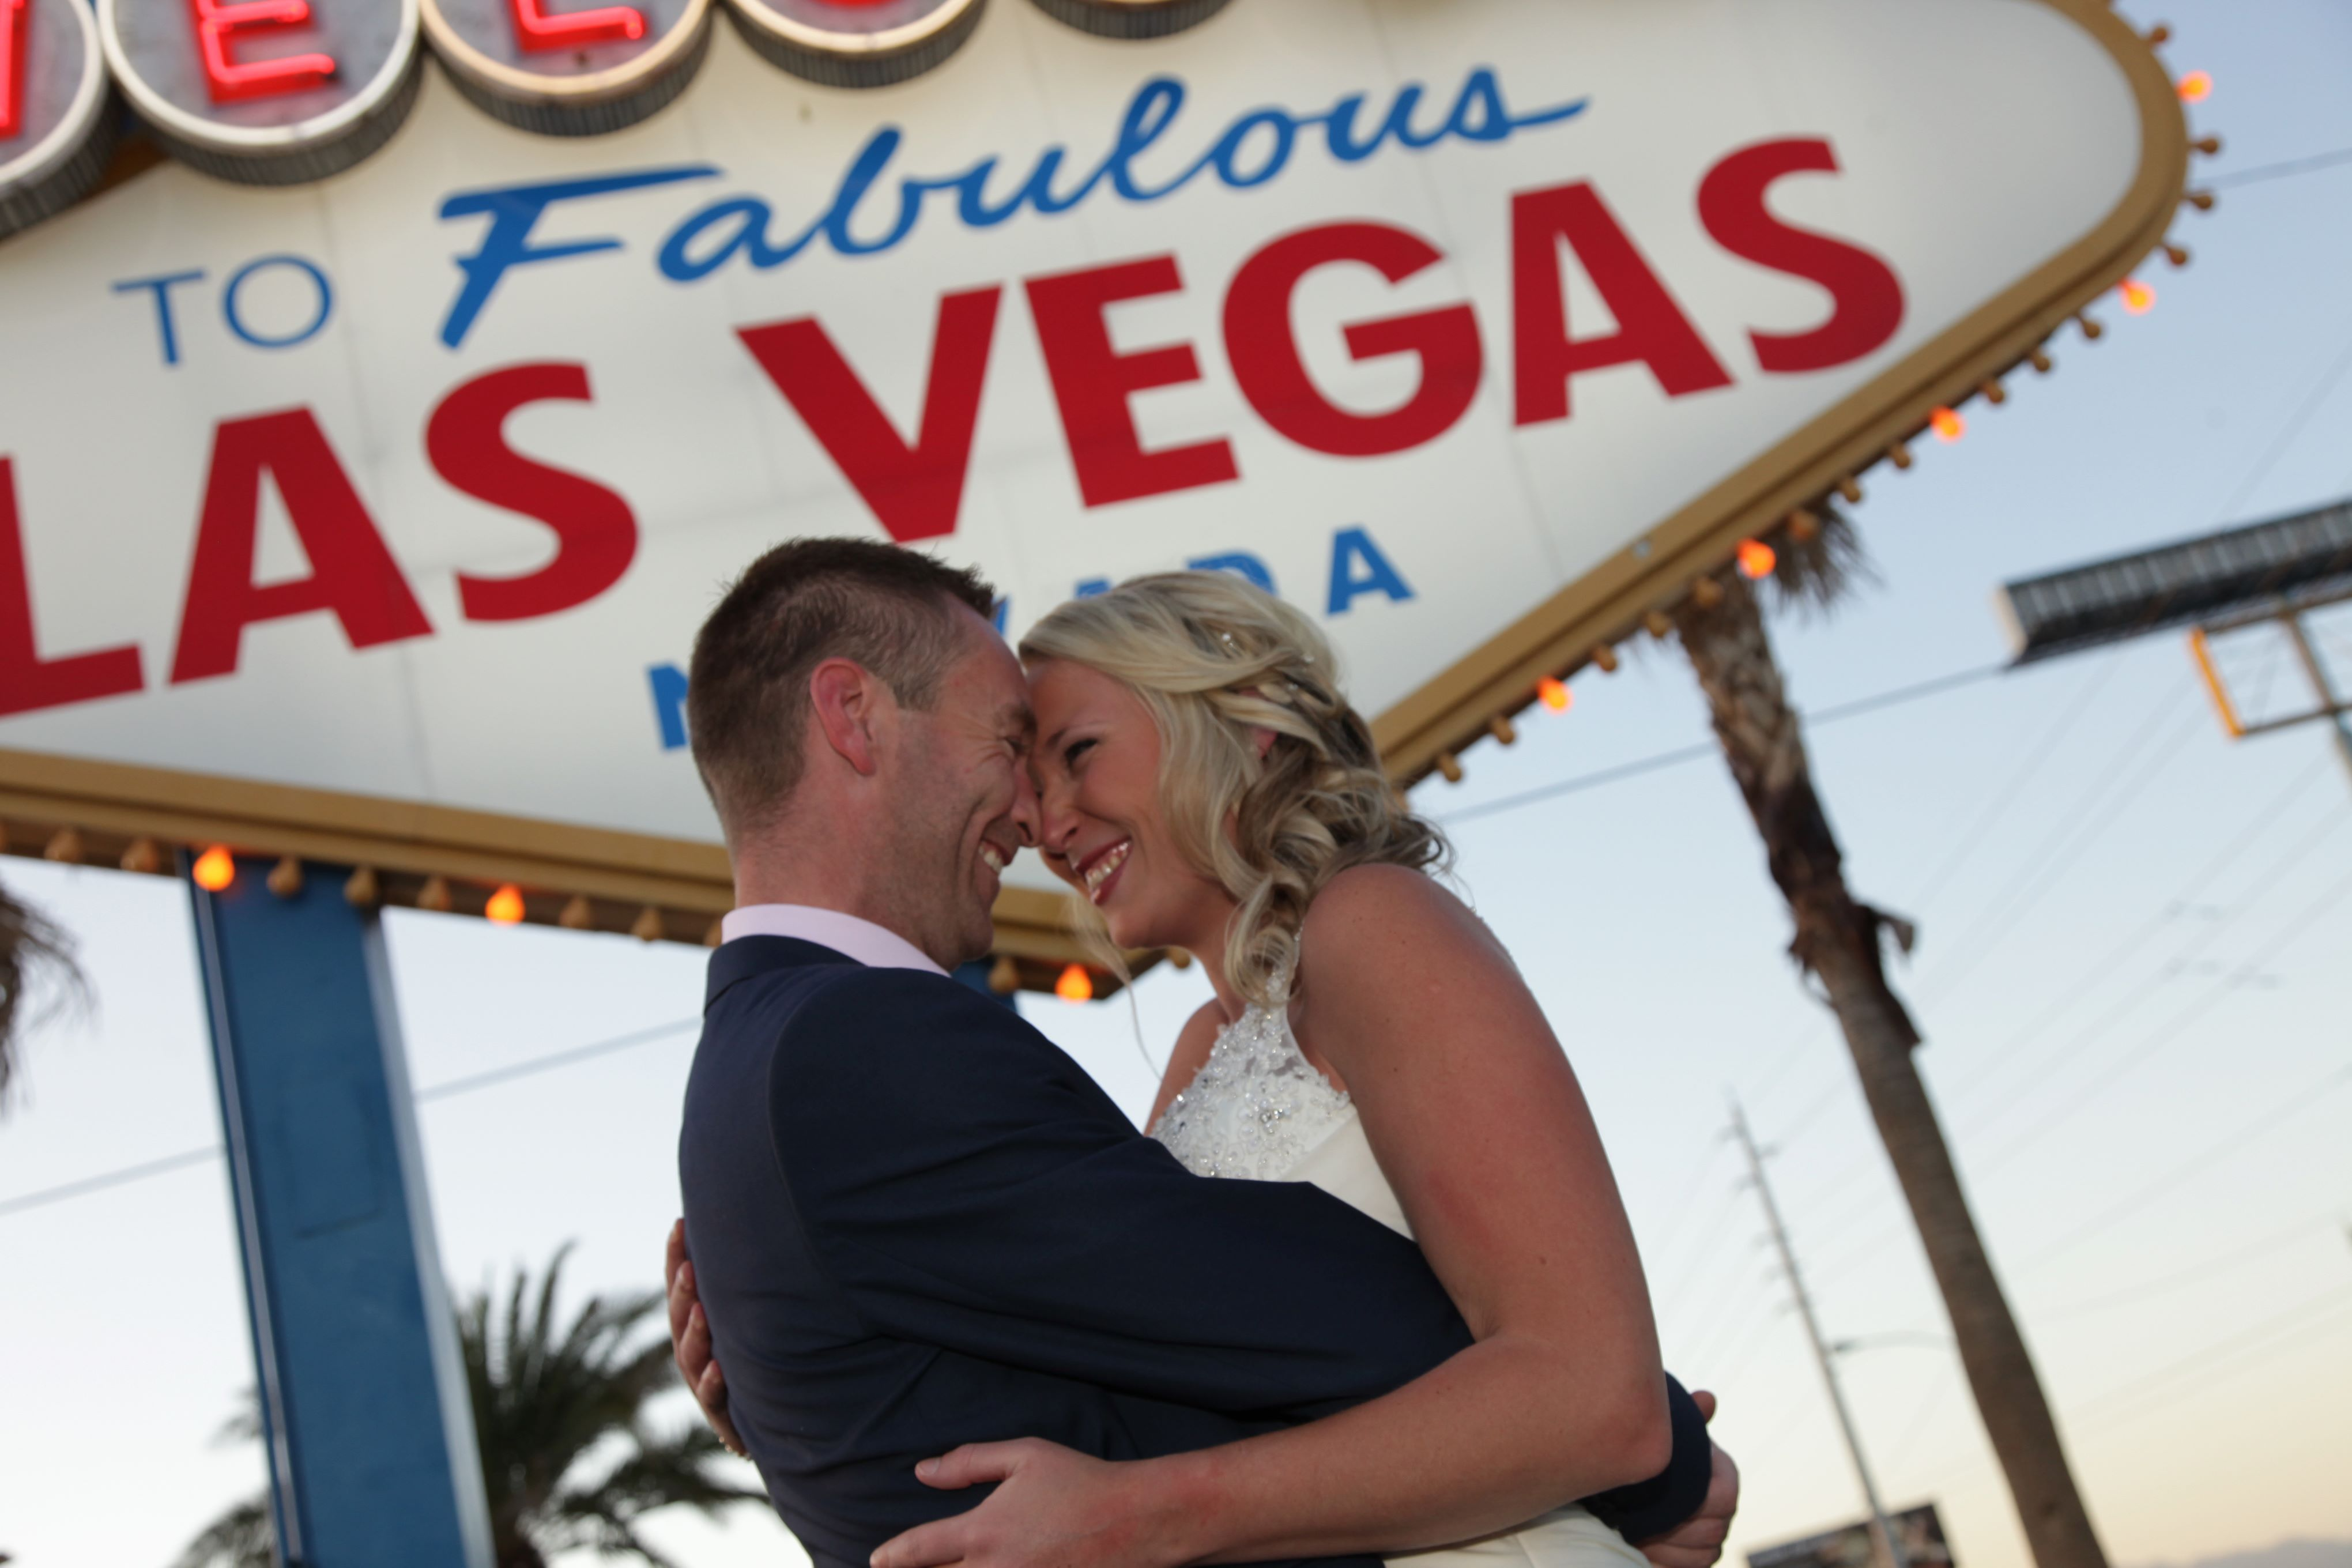 After The Wedding A Quick Stop Off For Ultimate Vegas Picture At